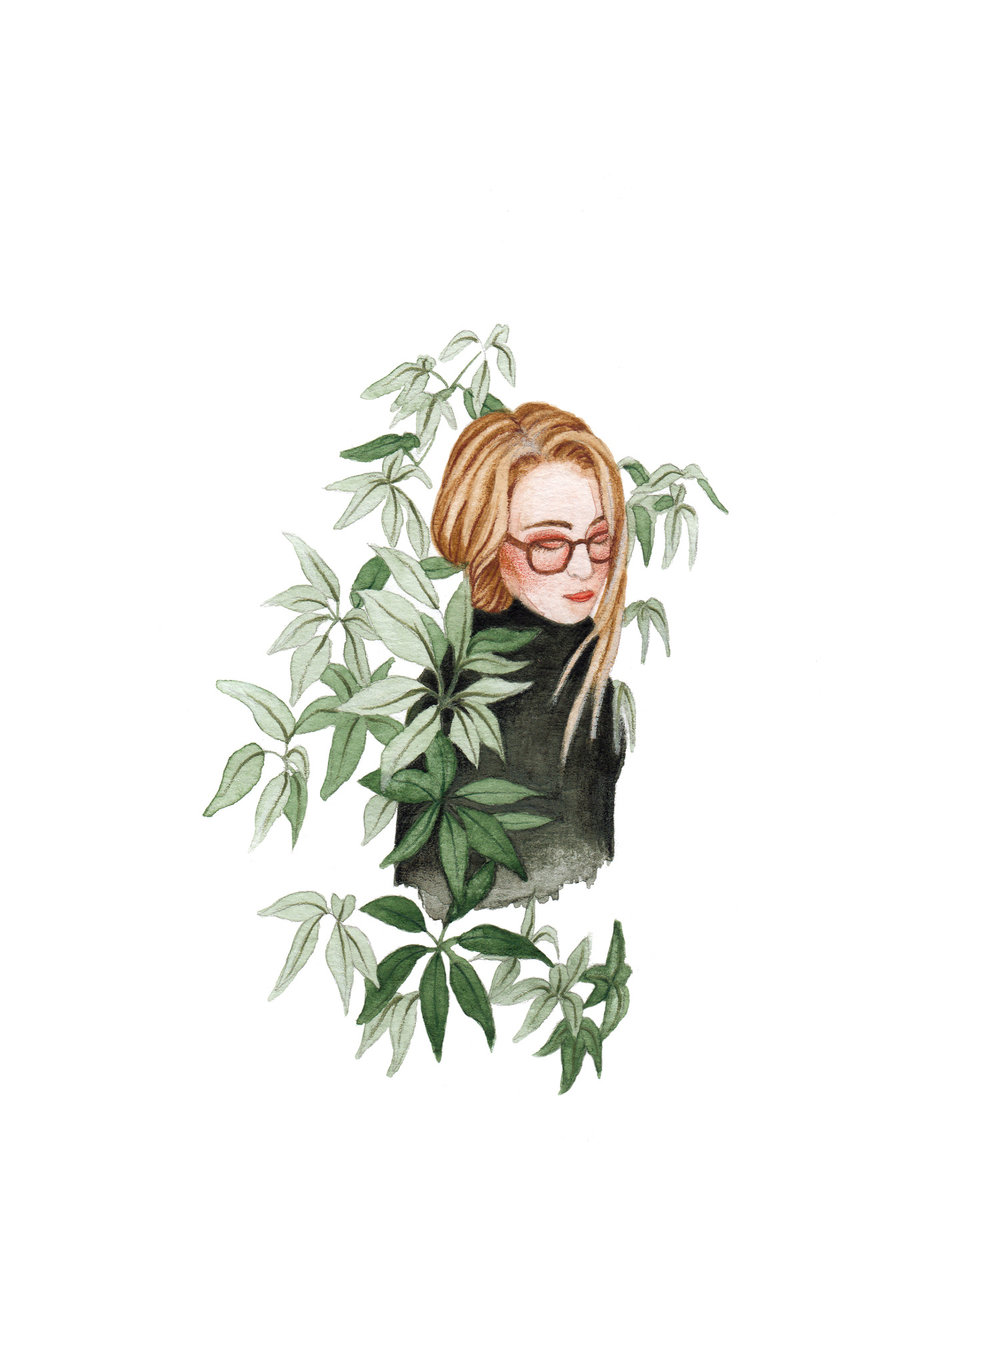 girlwithleaves.jpg